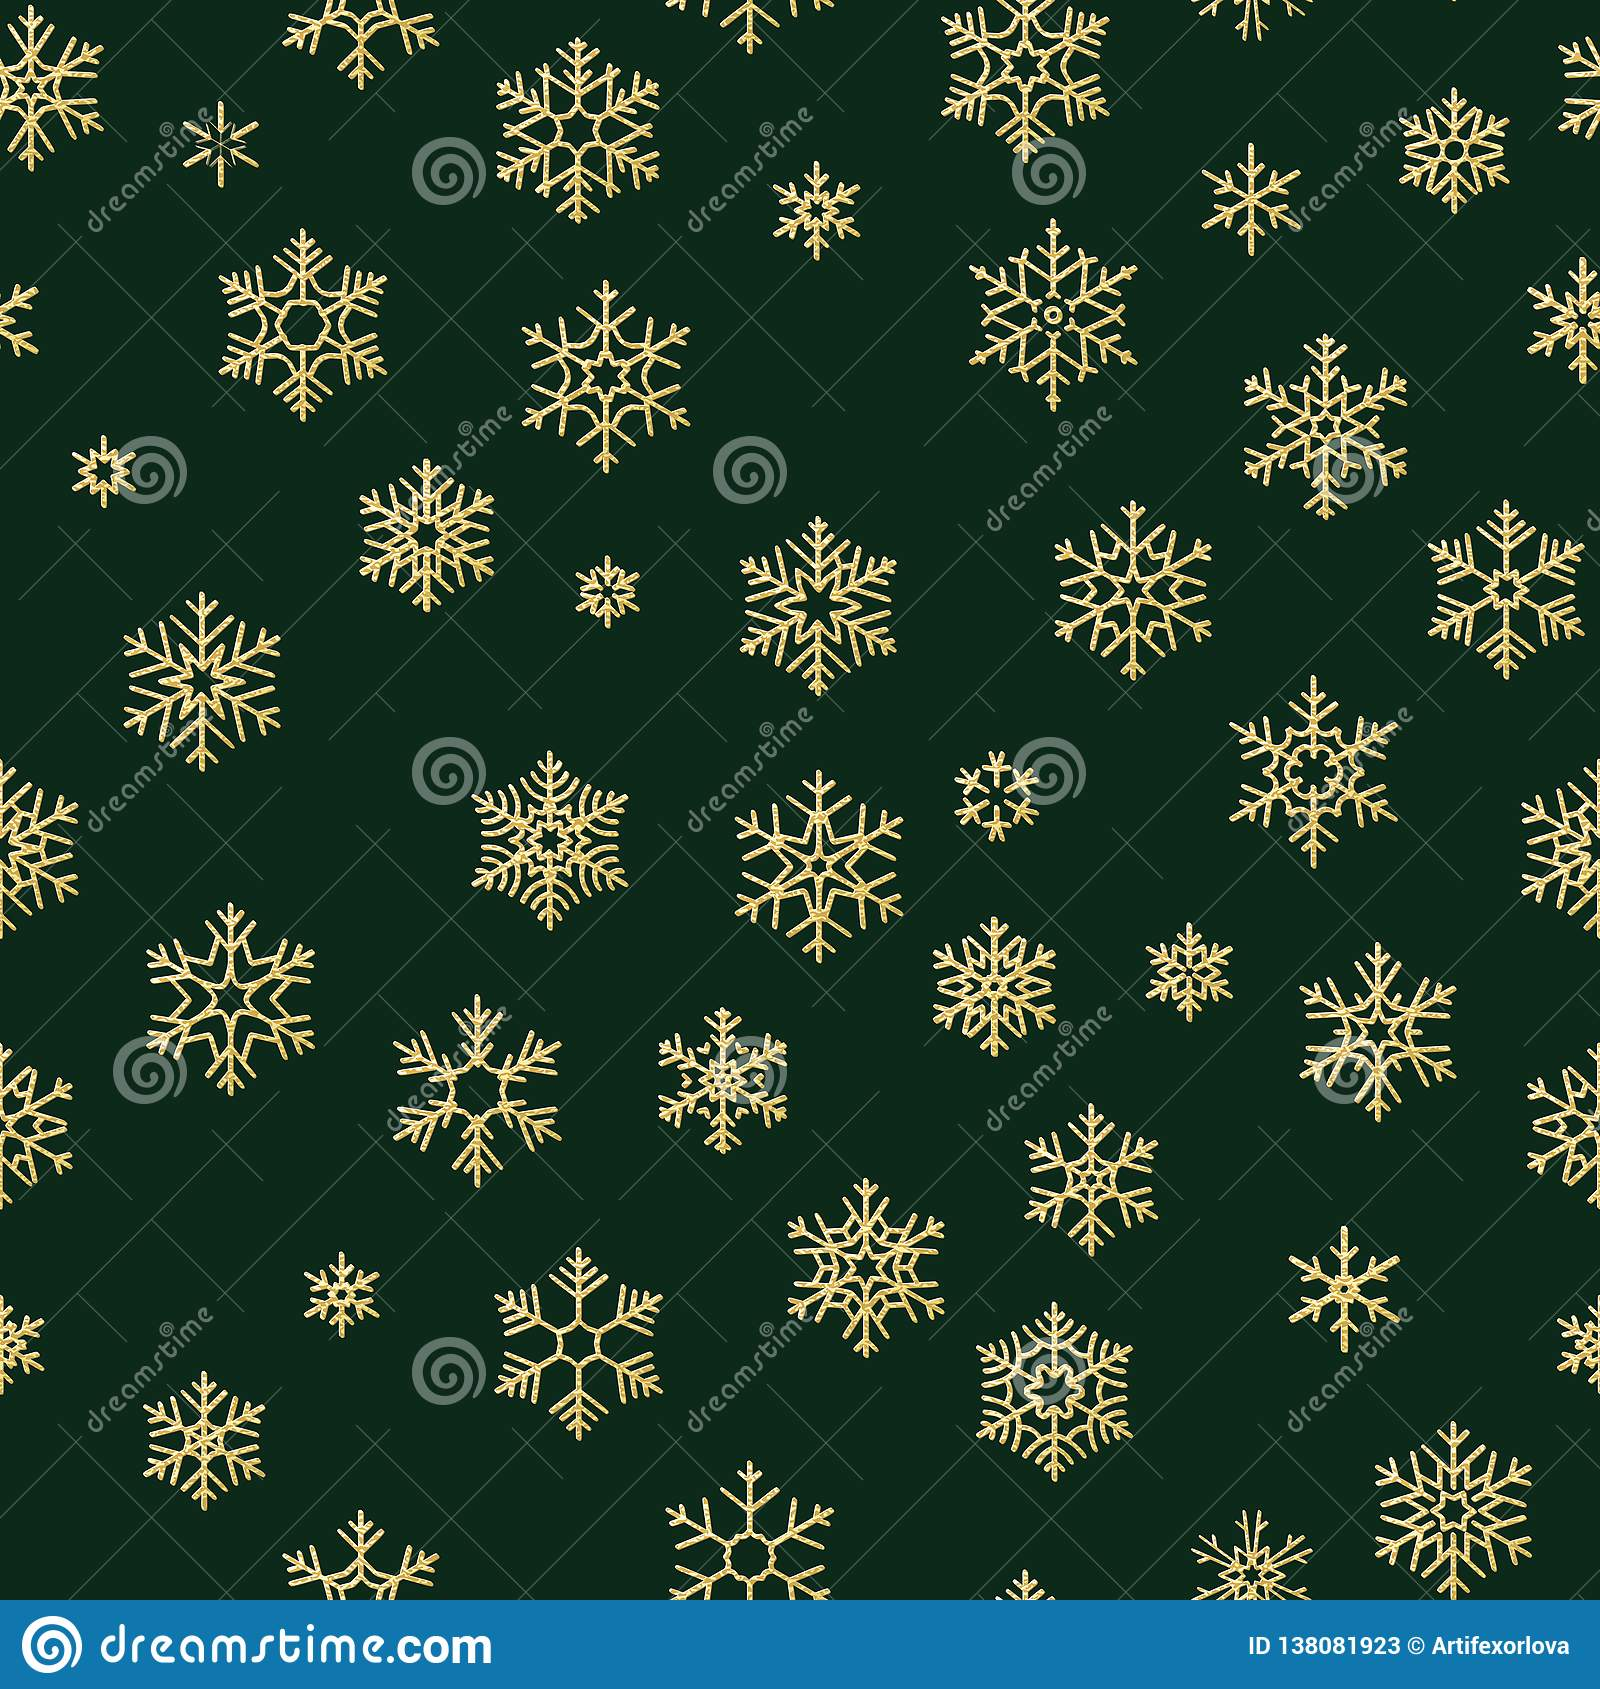 Merry Christmas and Happy New Year winter golden snowflakes seamless pattern. EPS 10